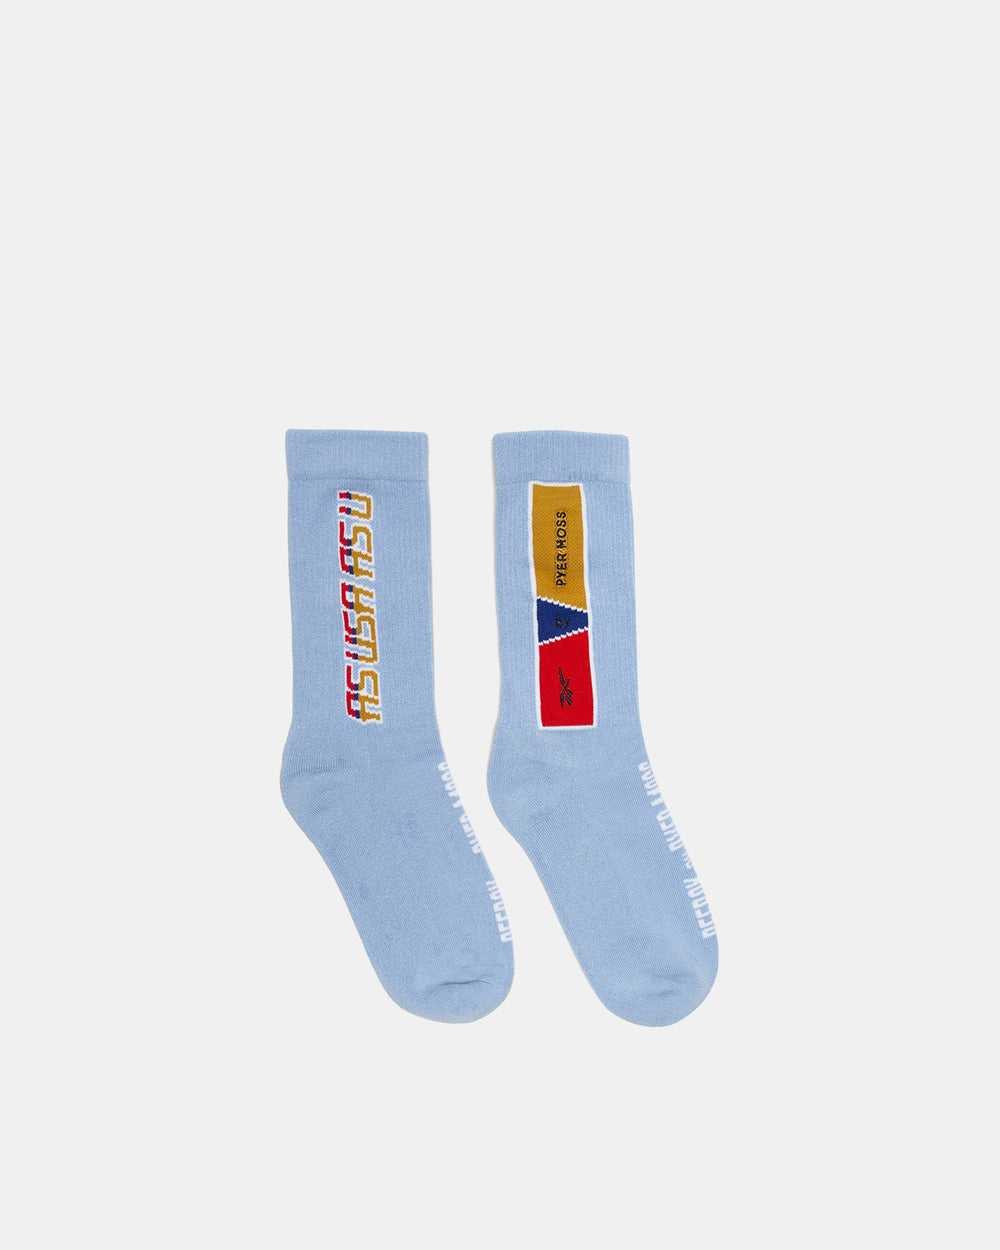 Reebok - Pyer Moss Crew Socks (Regal Purple)